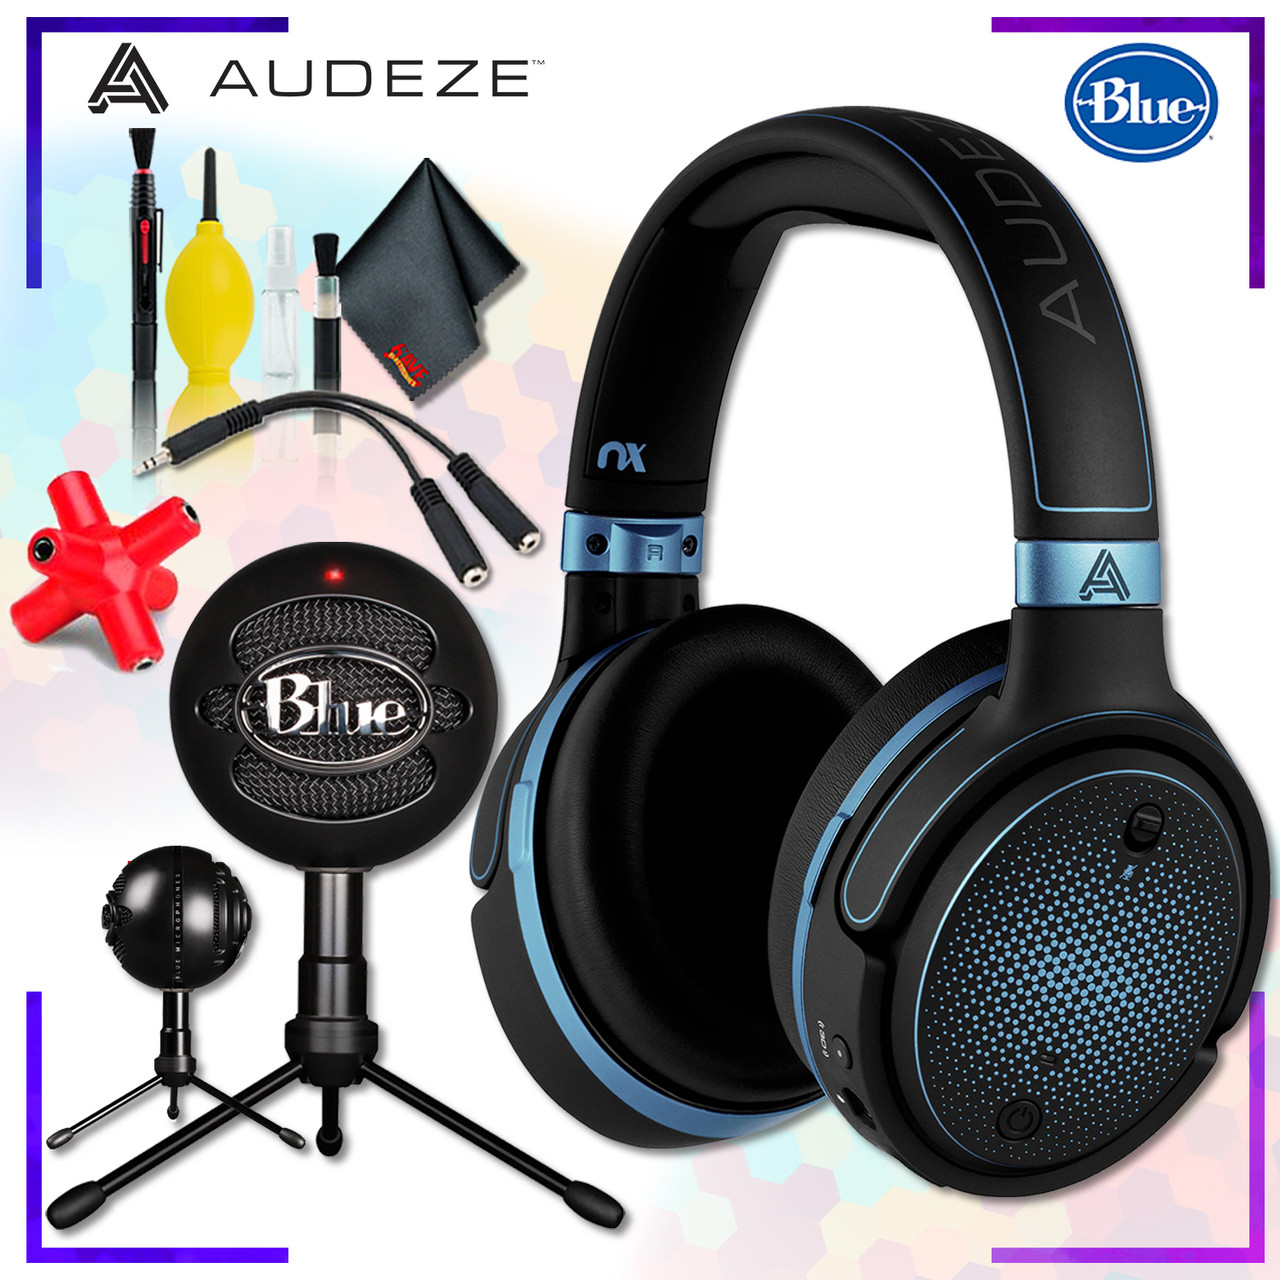 10eb5c9c4ee Audeze Mobius Planar Magnetic Gaming Headset (Blue) + Blue Snowball iCE  Microphone (Black) + Headphone and Knuckel Signal Splitter + Cleaning Kit -  hhgregg